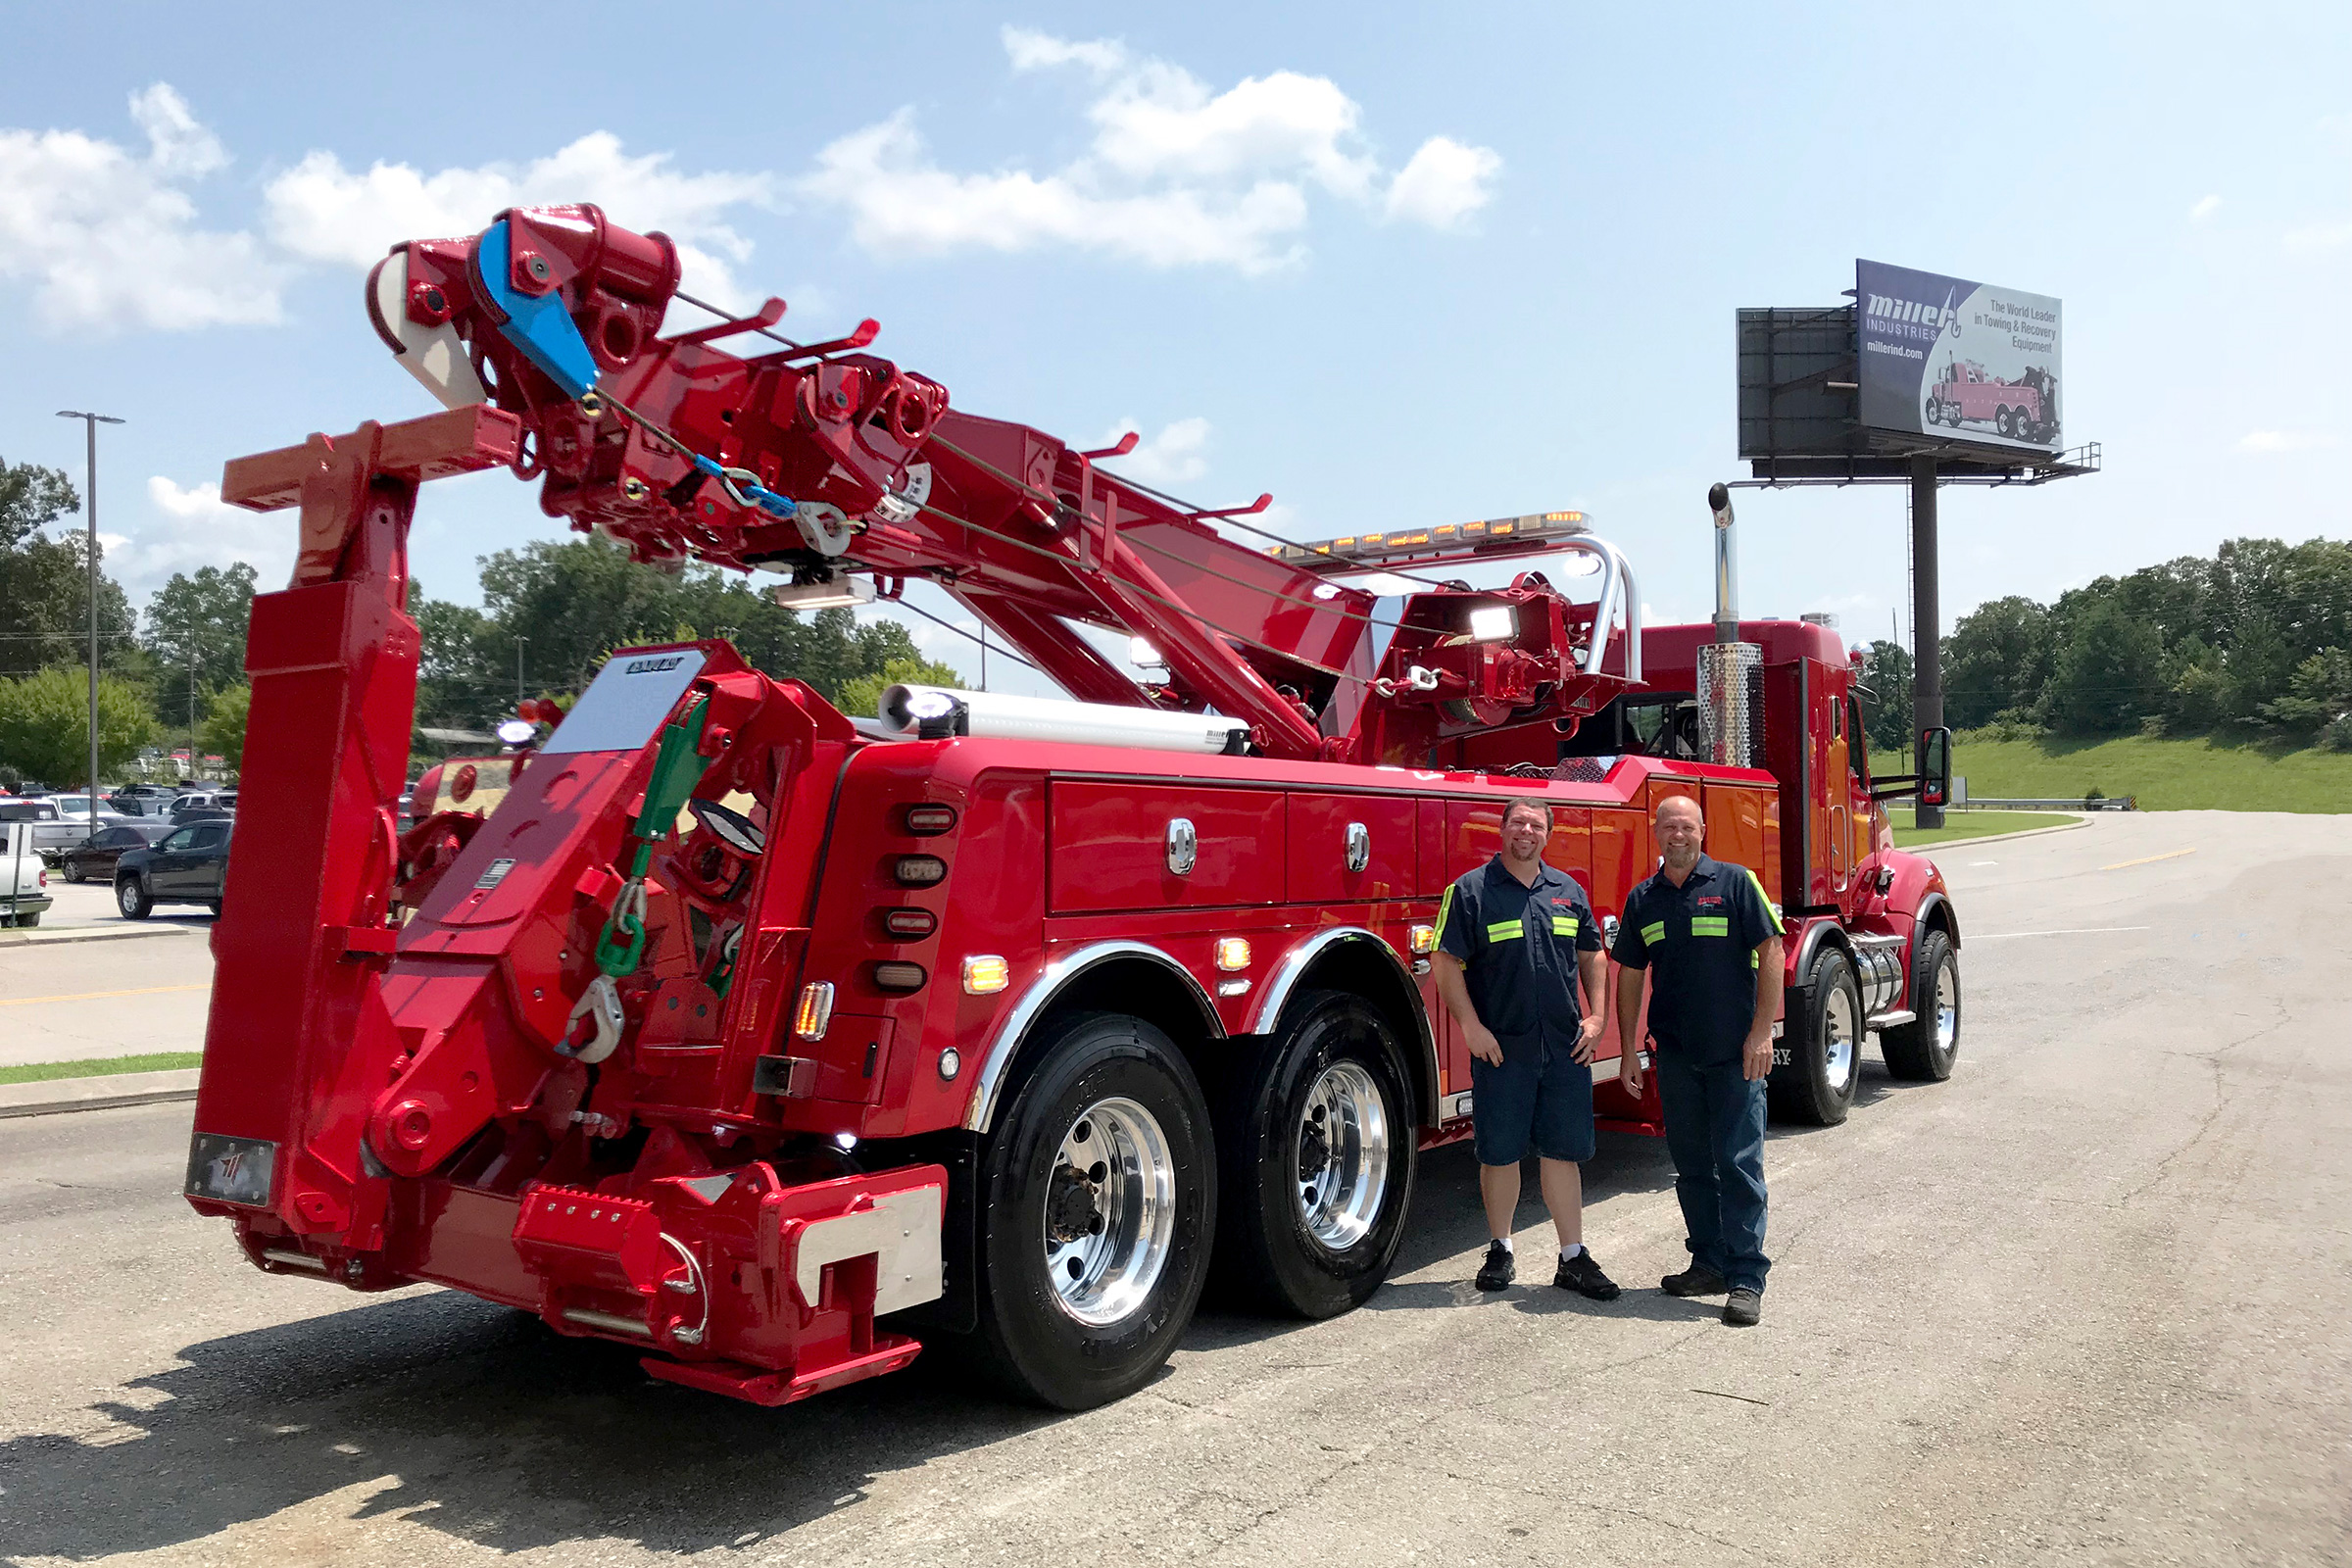 Gregory's Towing - Brookshire, TX / Century 1150 Rotator